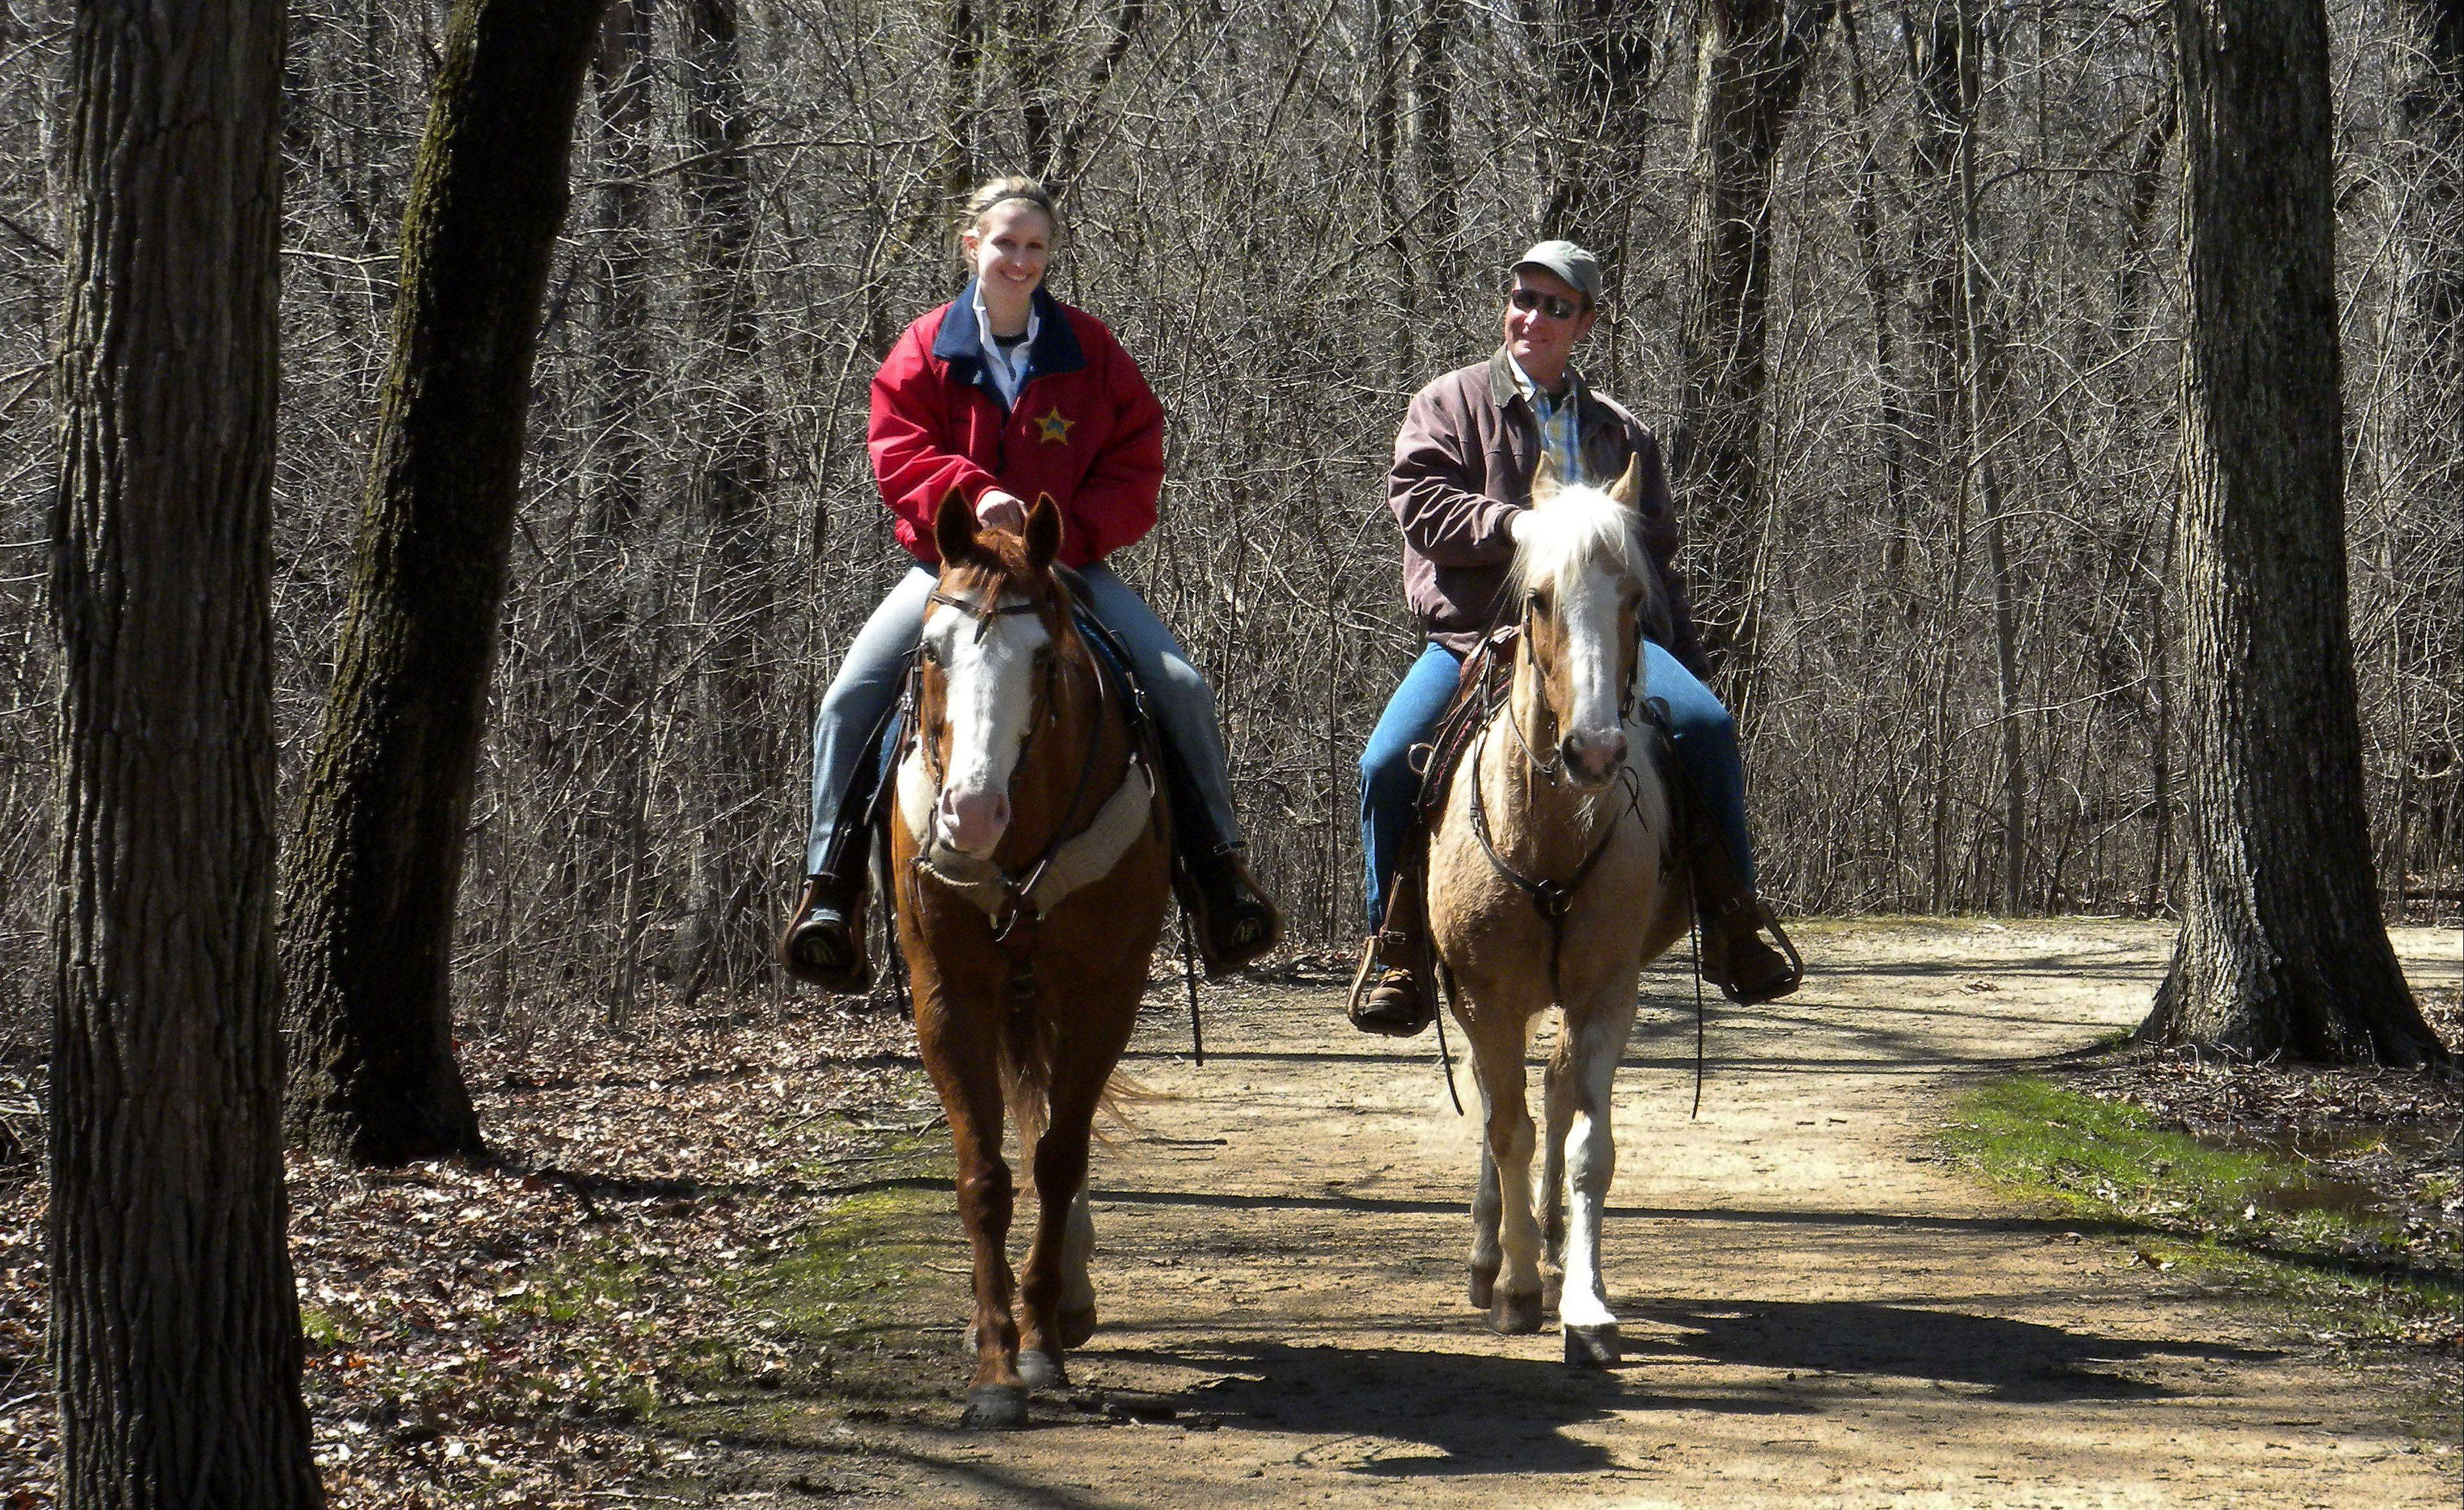 Some forest preserve areas are ideal for equestrians, who are bound by the same rules of trail etiquette as other users.